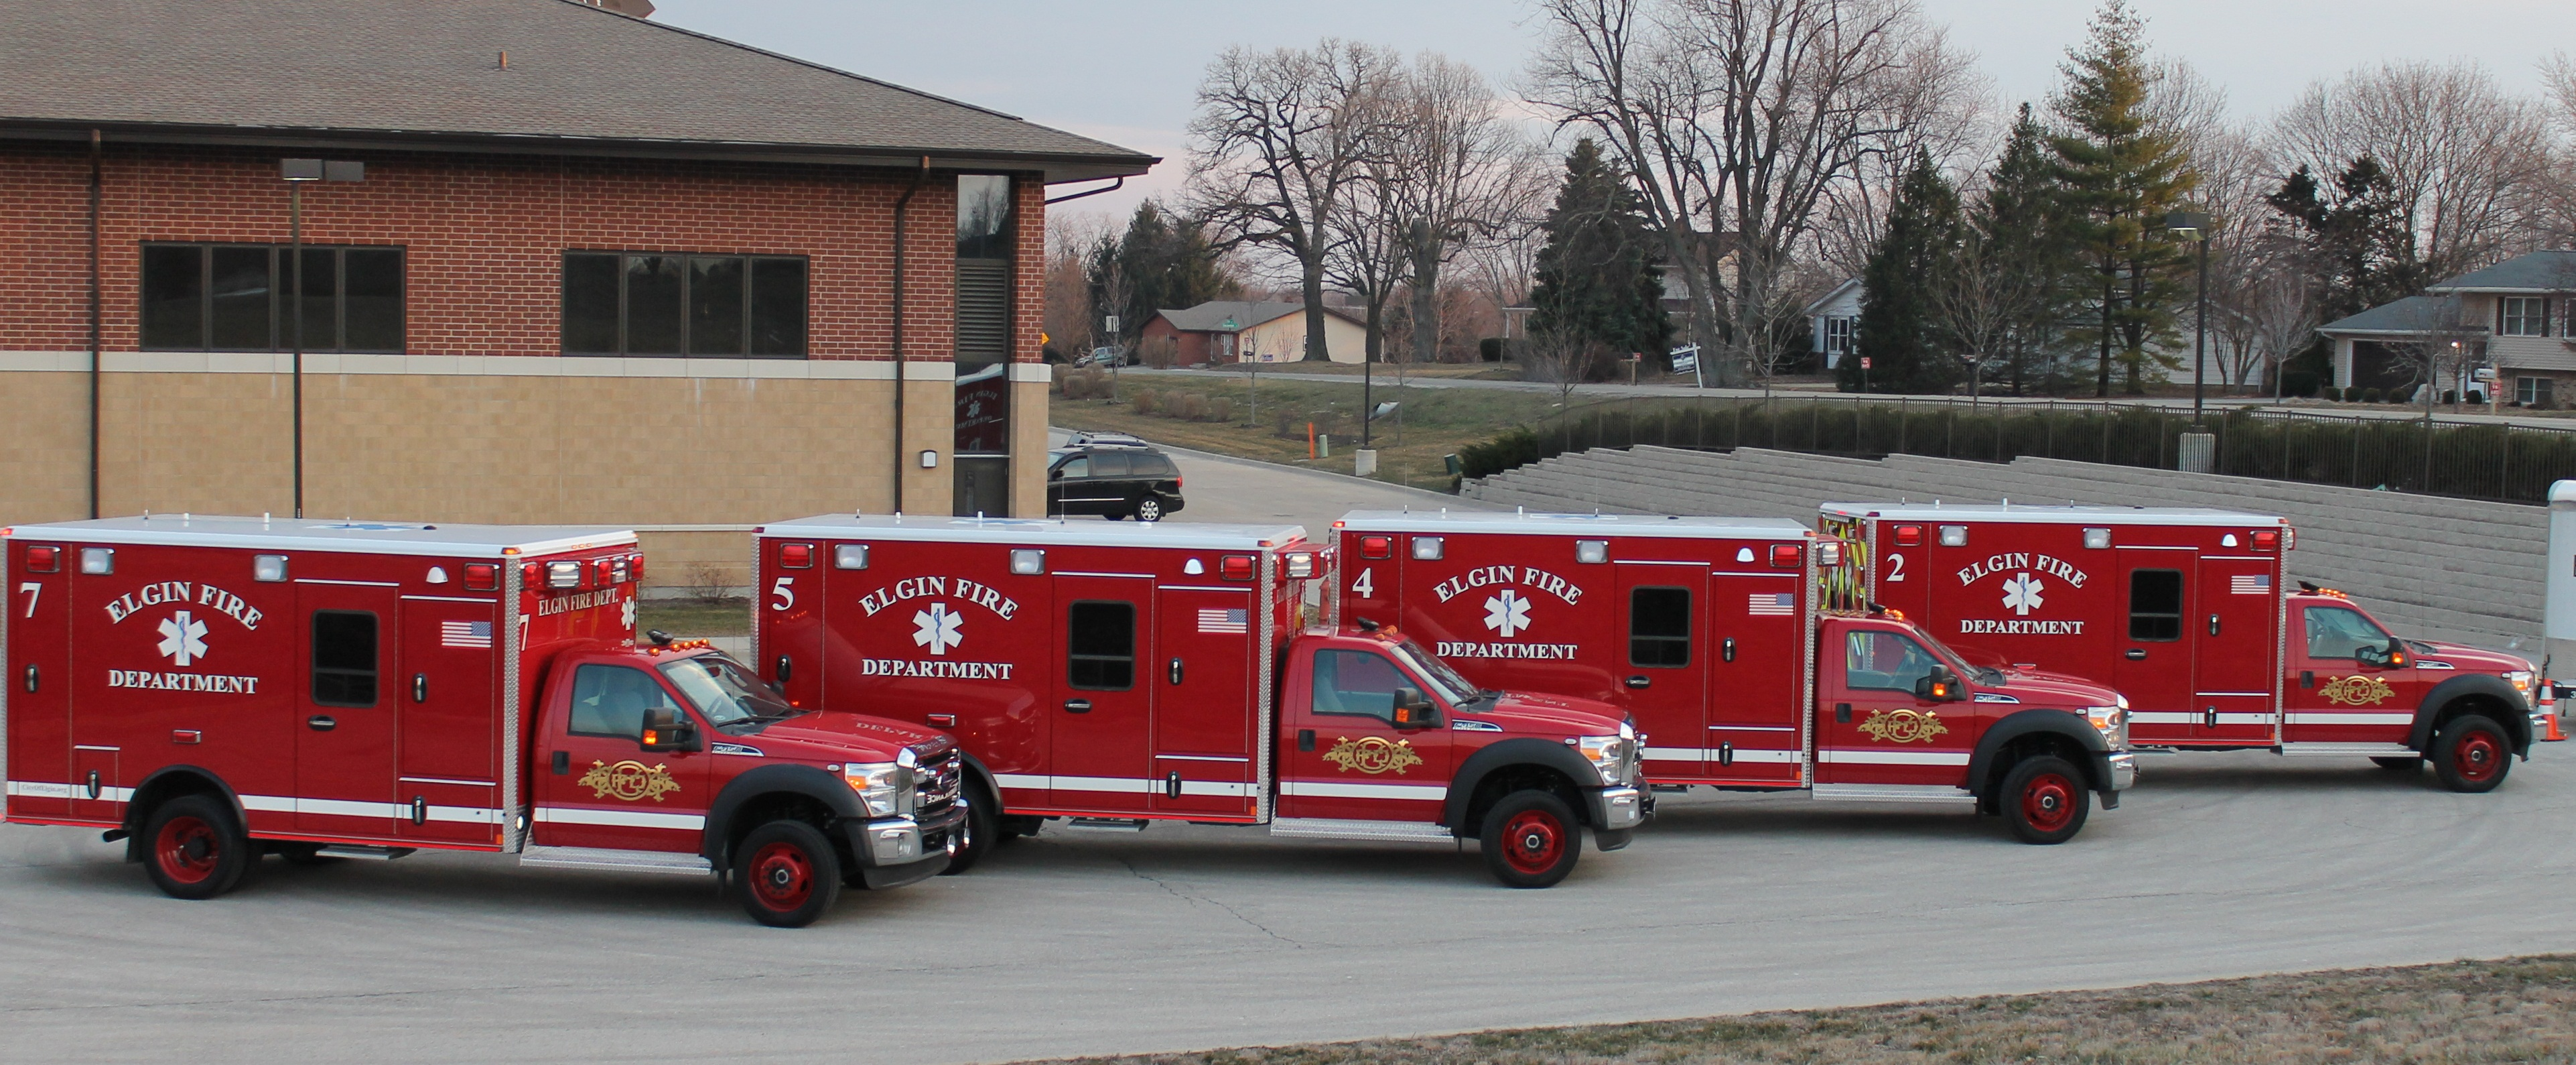 Ambulances 2, 4, 5 and 7